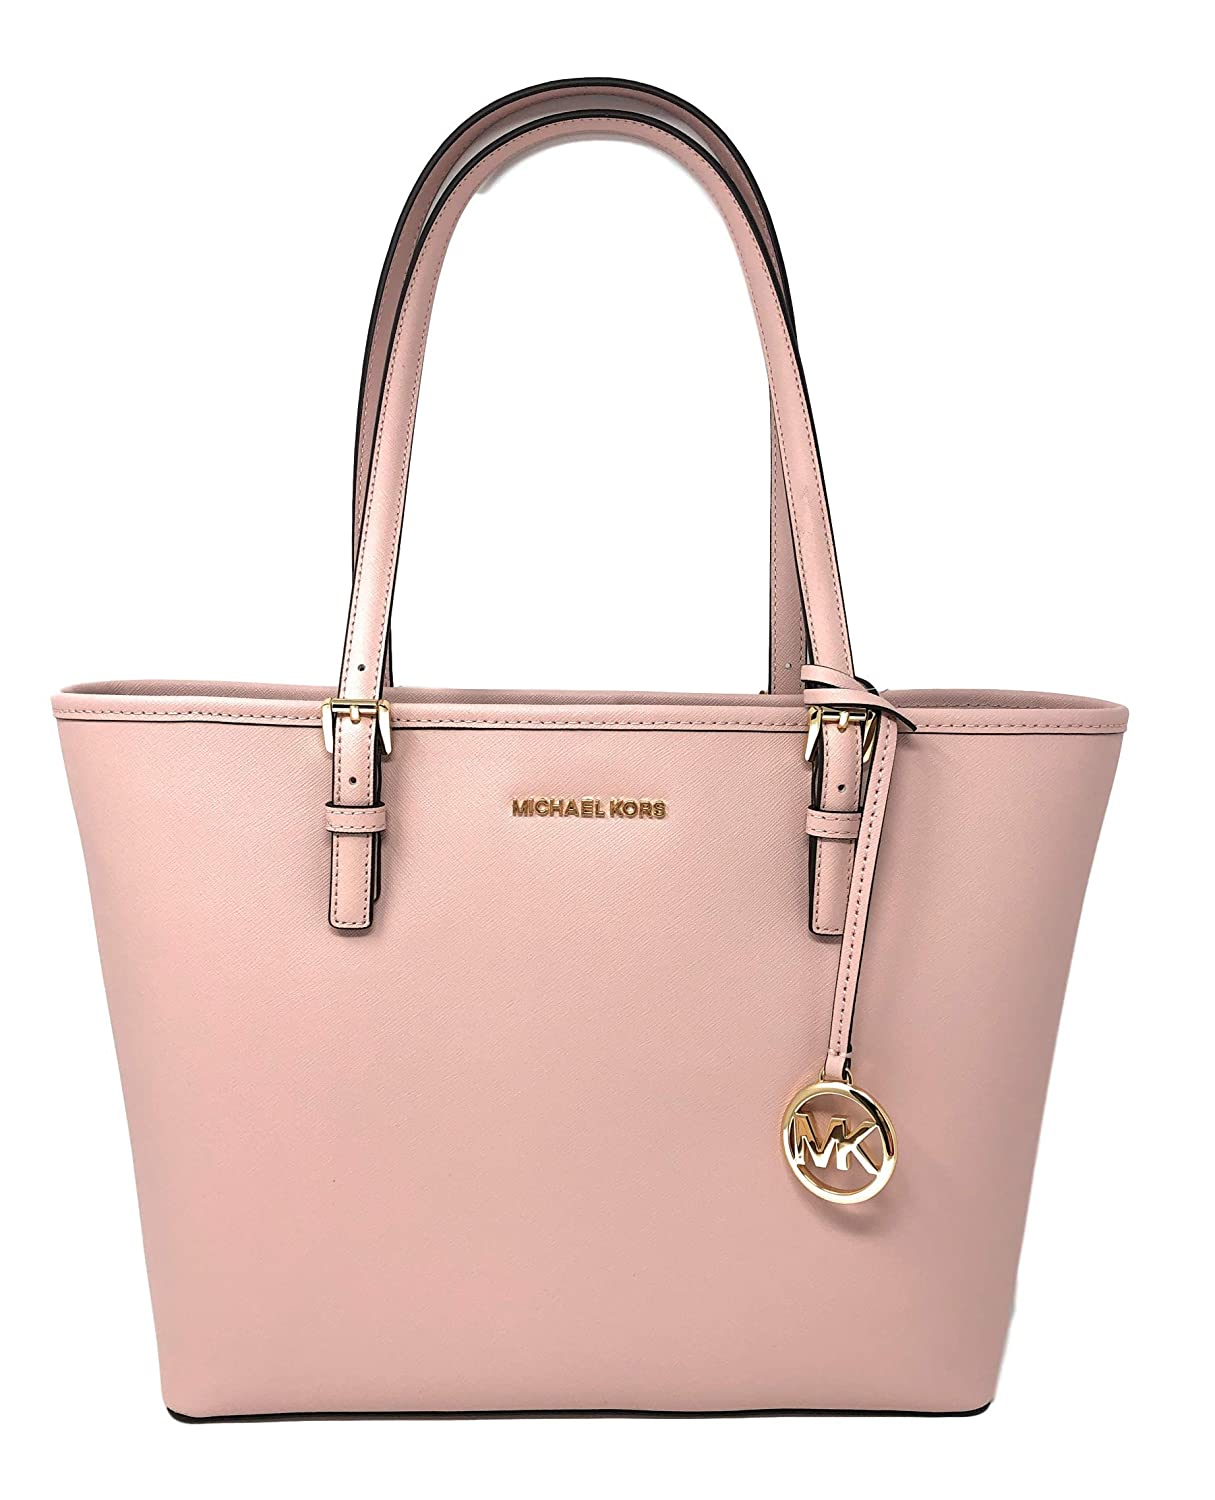 Michael Kors Jet Set Travel Medium Carryall Saffiano Tote